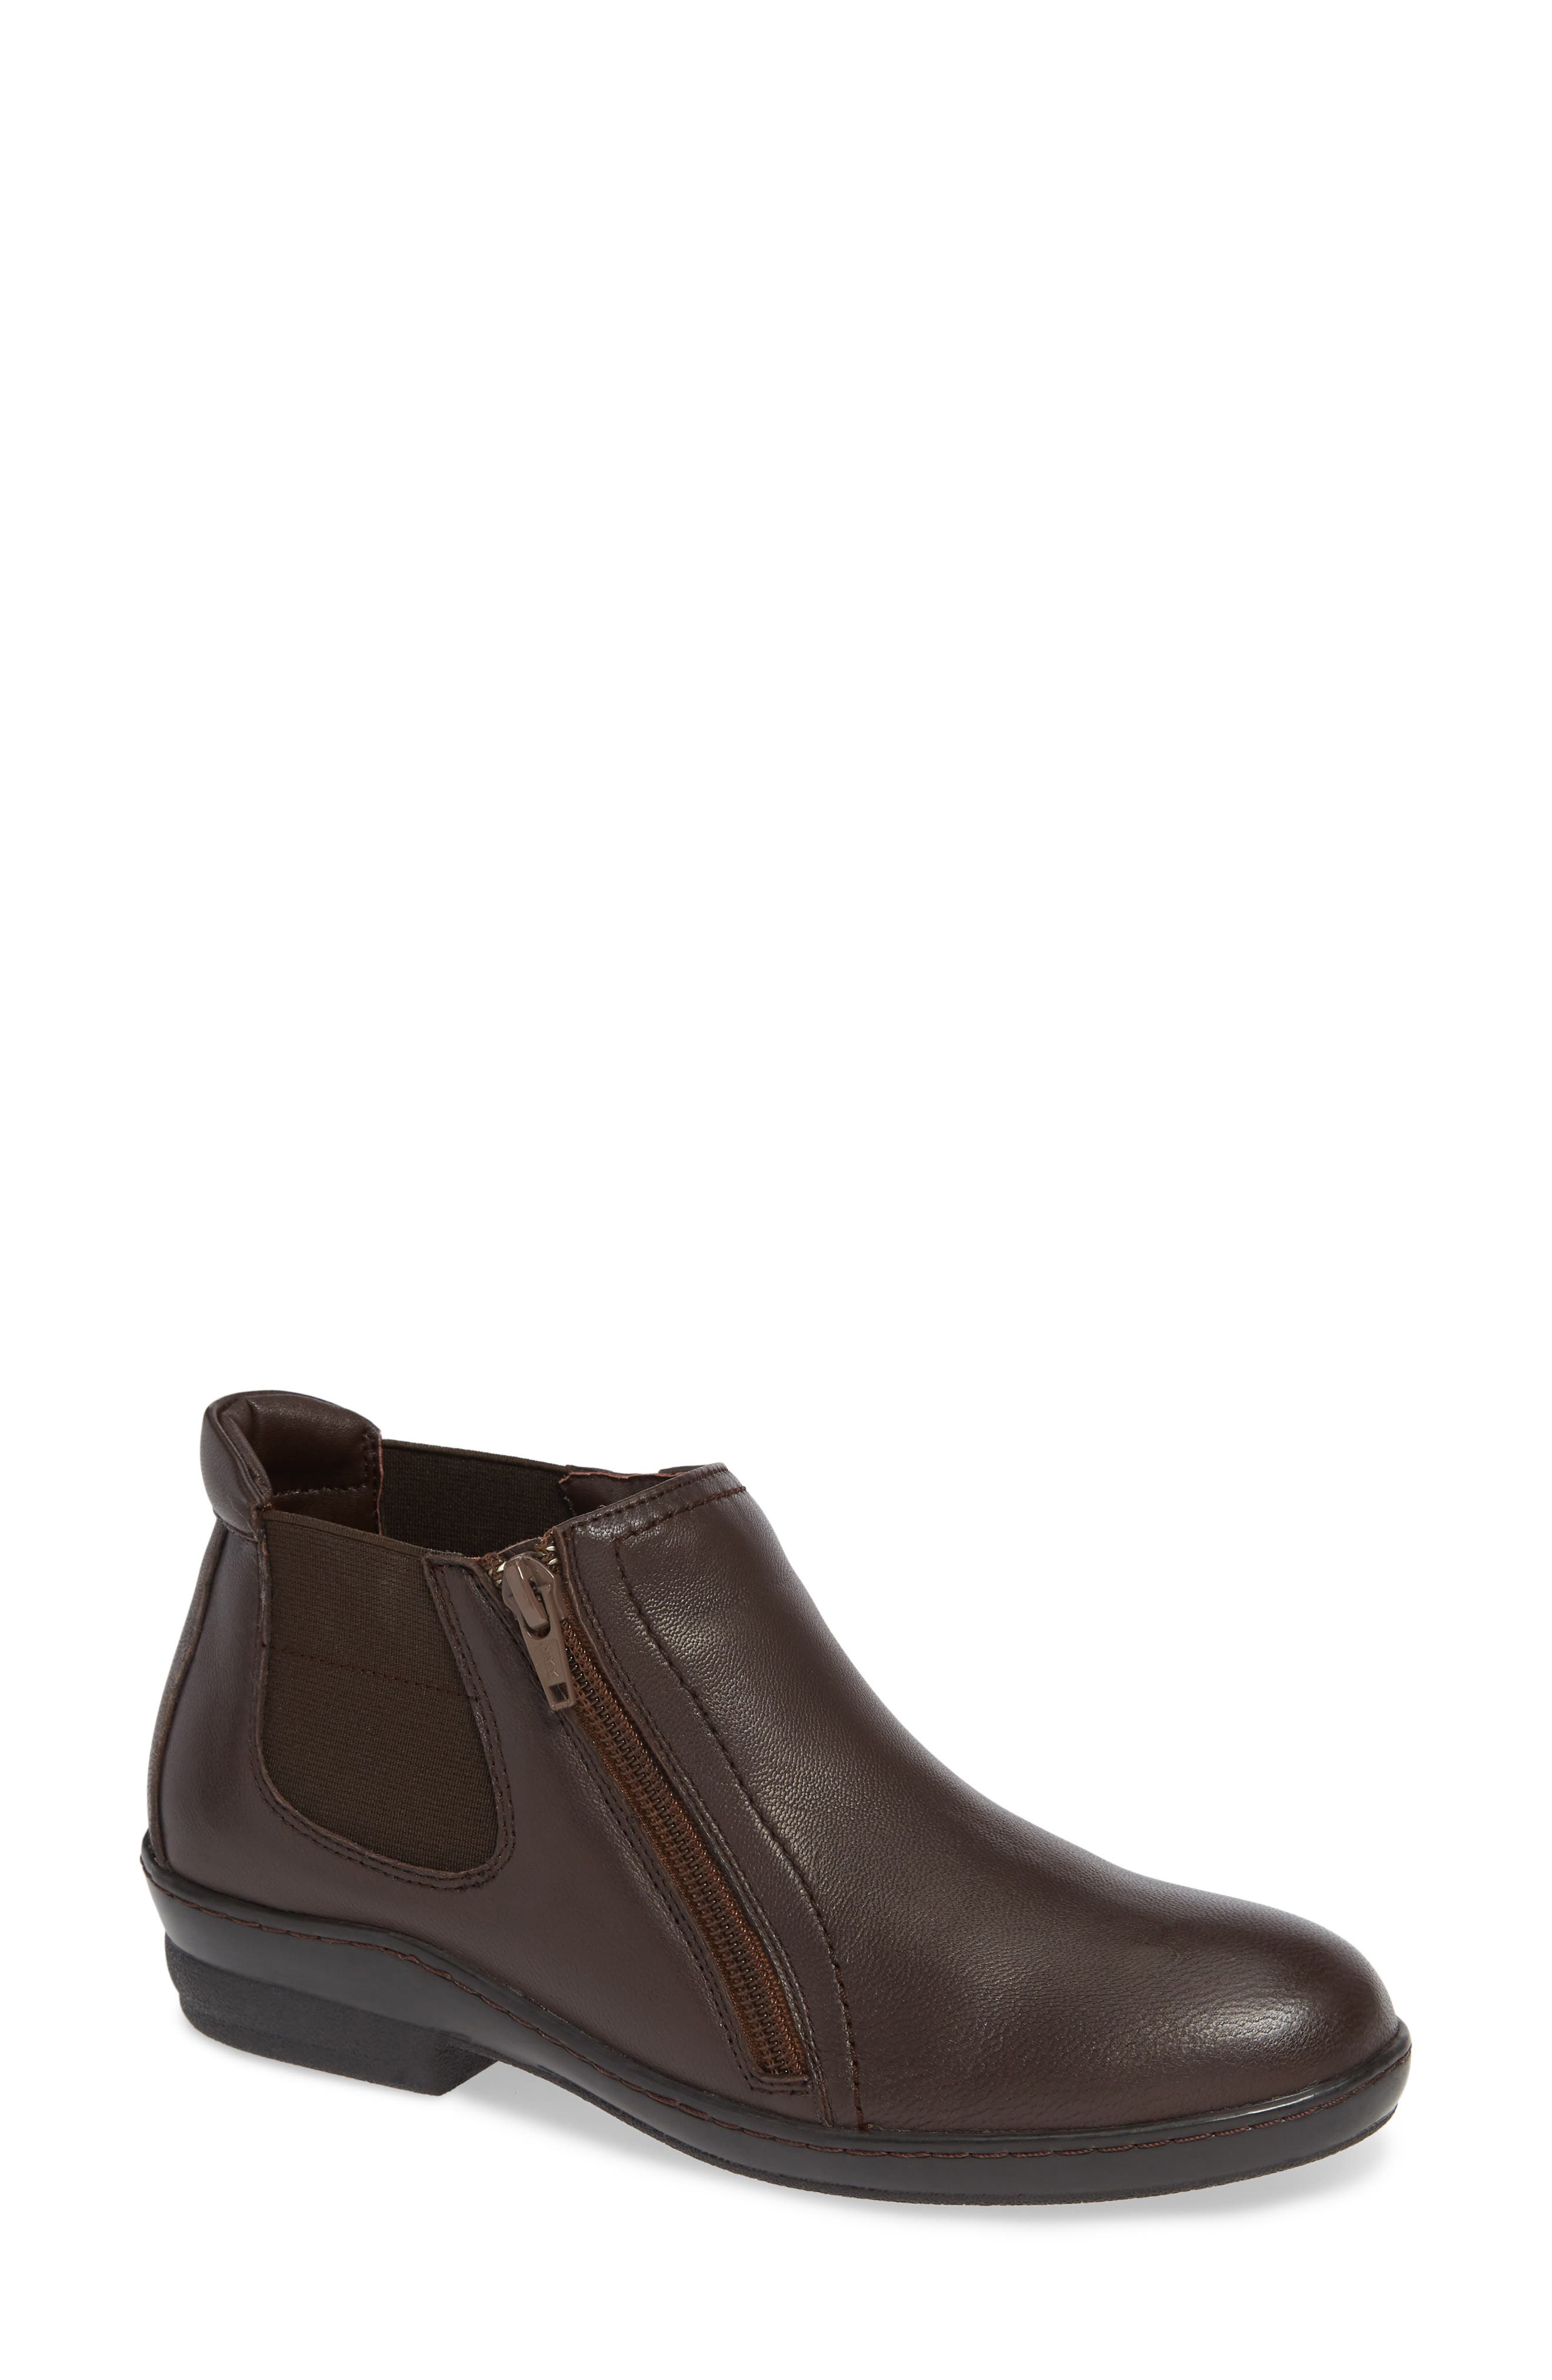 David Tate Bristol Bootie, Brown